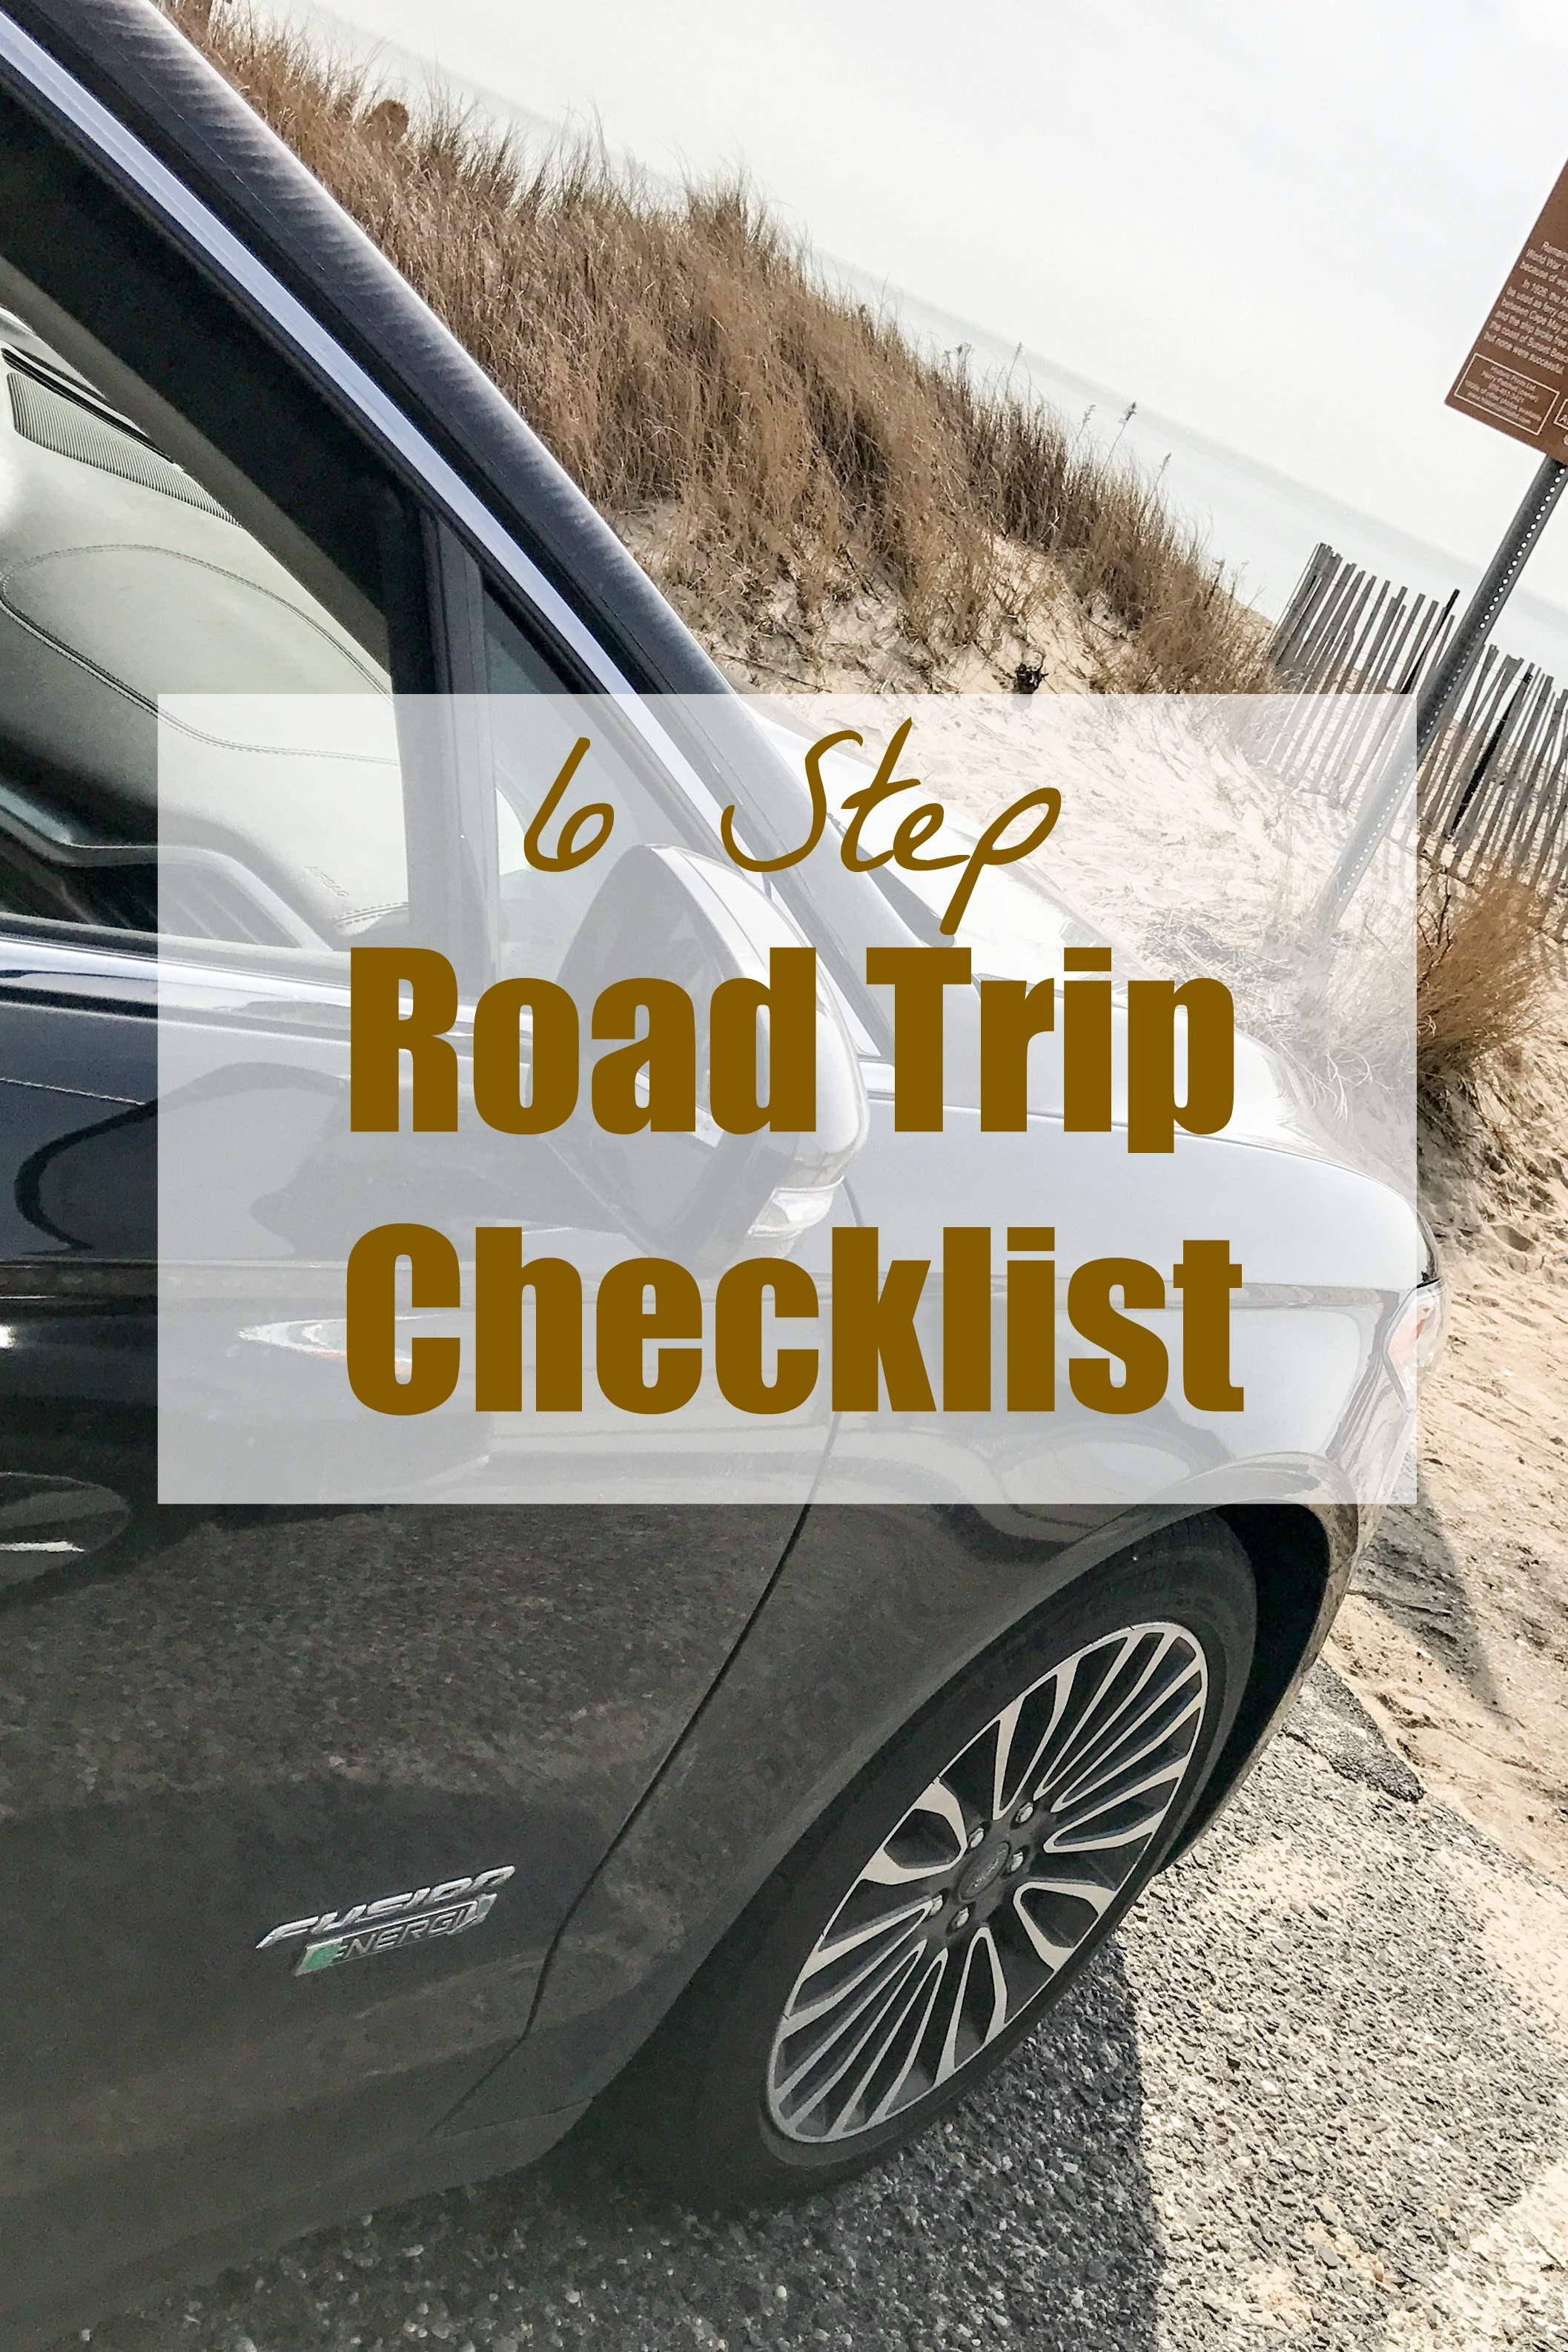 6 Step Road Trip Checklist